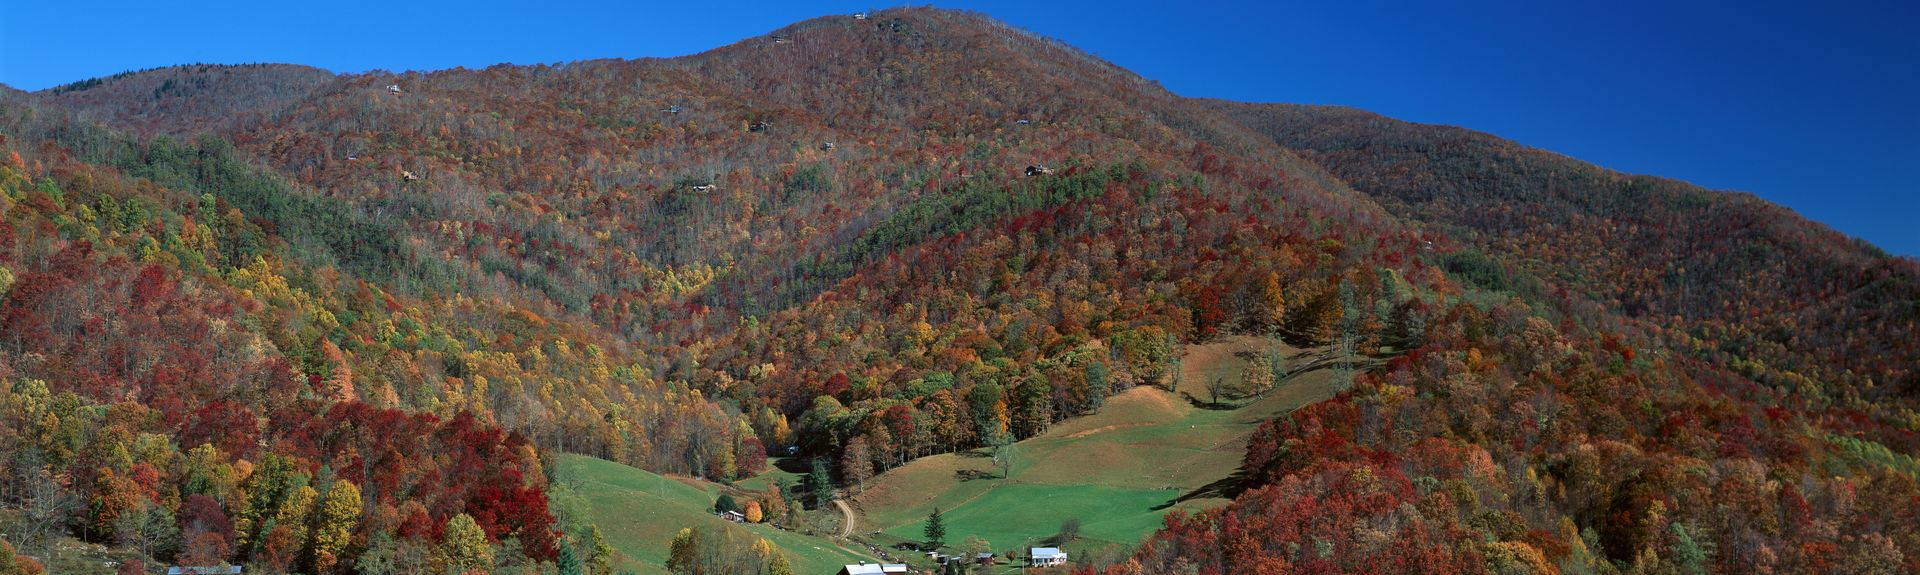 Maggie Valley, Nord-Carolina, Forente Stater